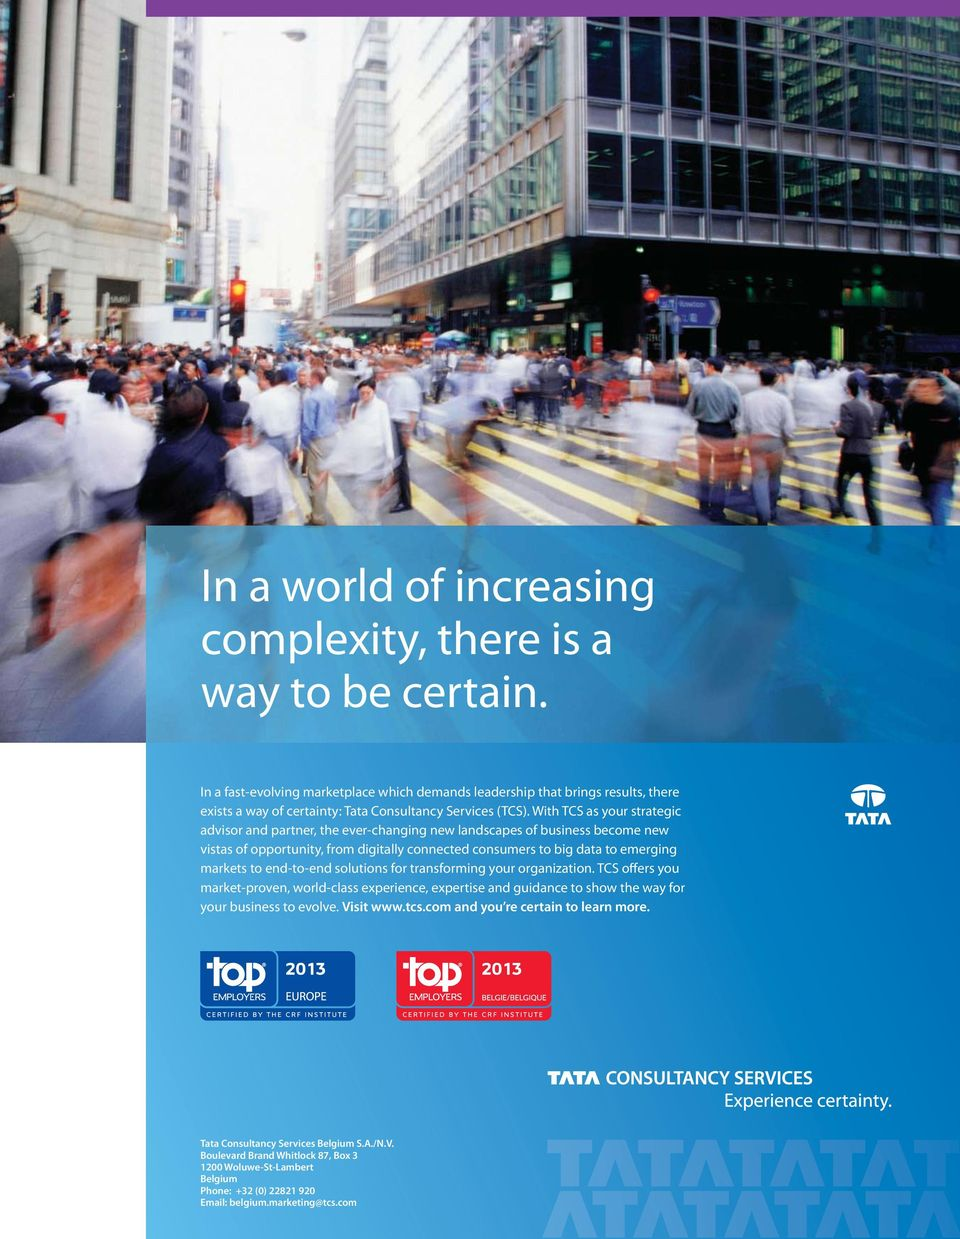 With TCS as your strategic advisor and partner, the ever-changing new landscapes of business become new vistas of opportunity, from digitally connected consumers to big data to emerging markets to